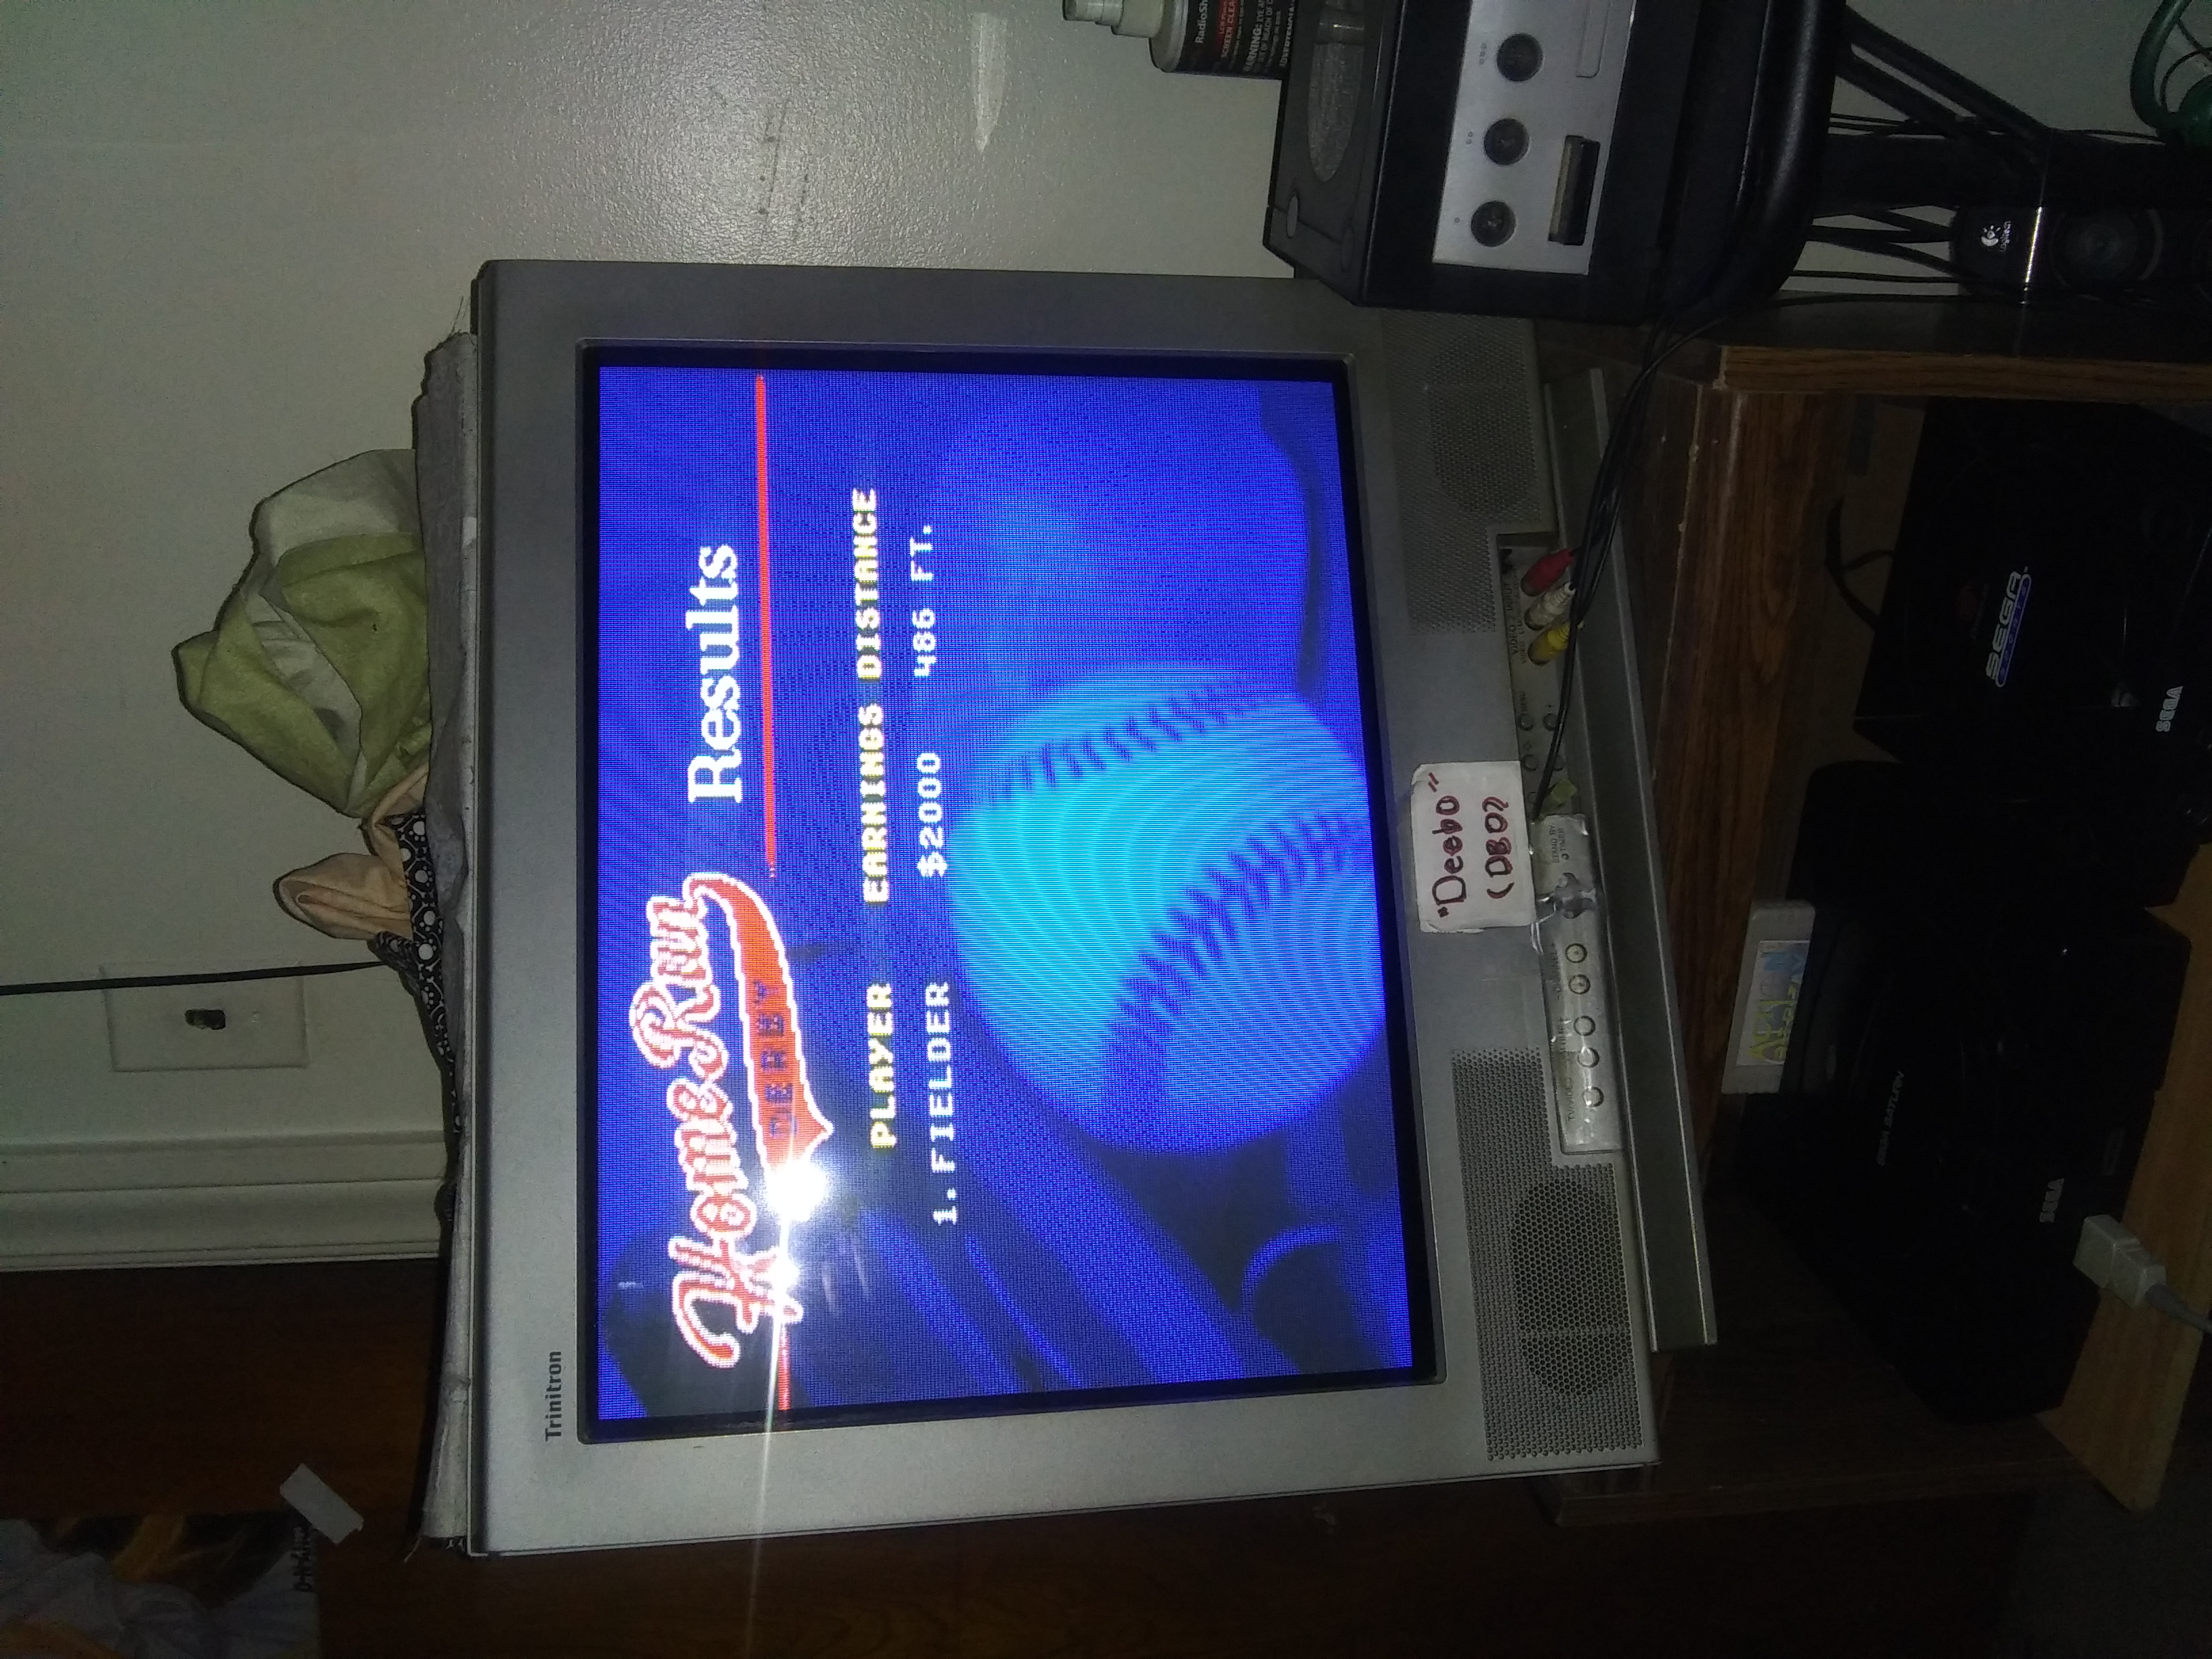 Deebo: World Series Baseball: Home Run Derby [Longest Home Run in Feet] (Sega Genesis / MegaDrive) 486 points on 2019-07-15 21:07:40